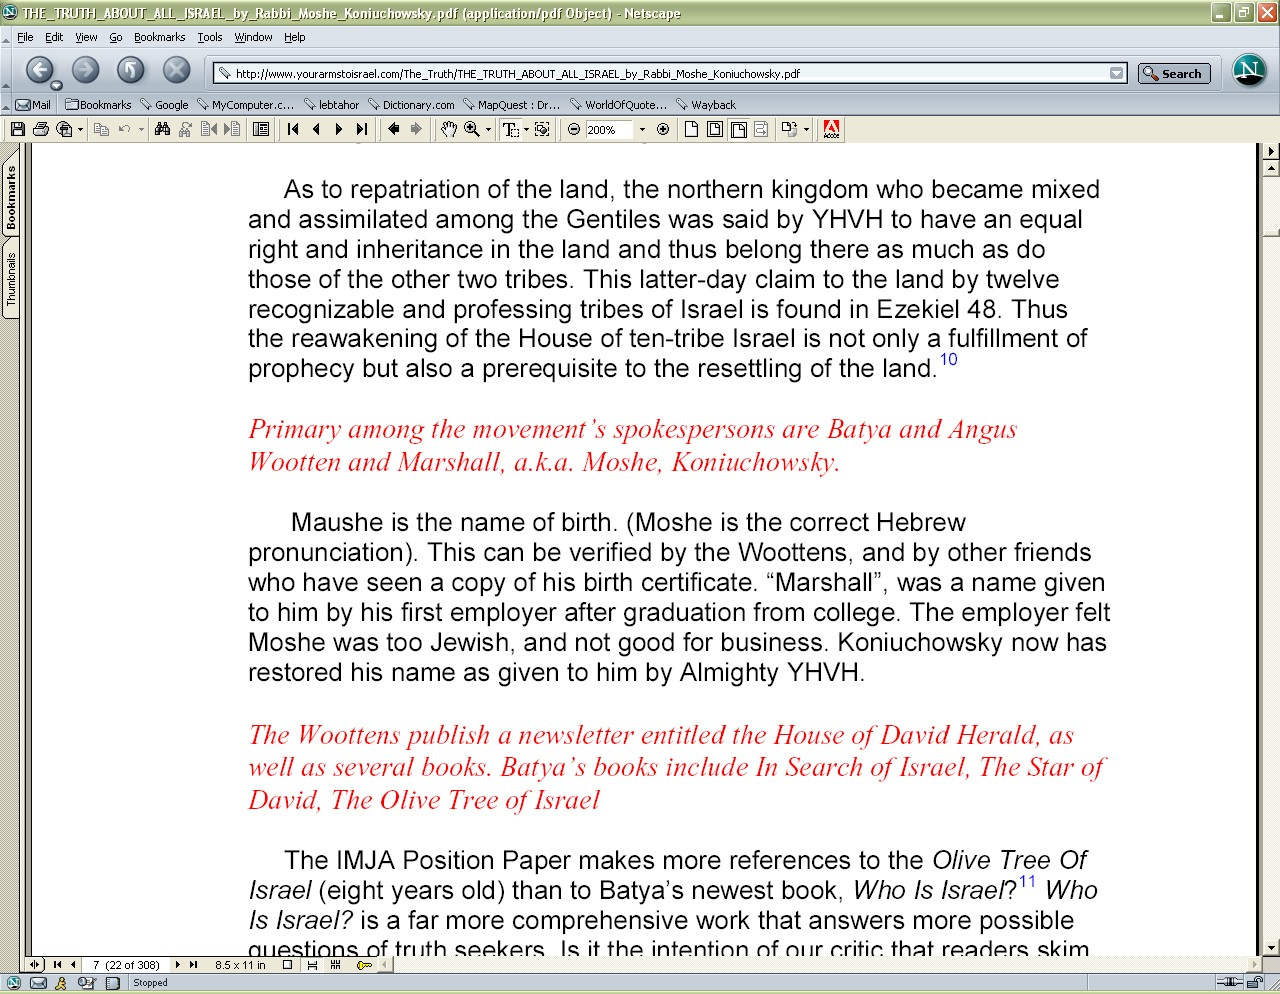 Mascaro witness a refuting of the ephraimite error paper published by mjaa he states maushe is the name of birth moshe is the correct hebrew pronunciation aiddatafo Images